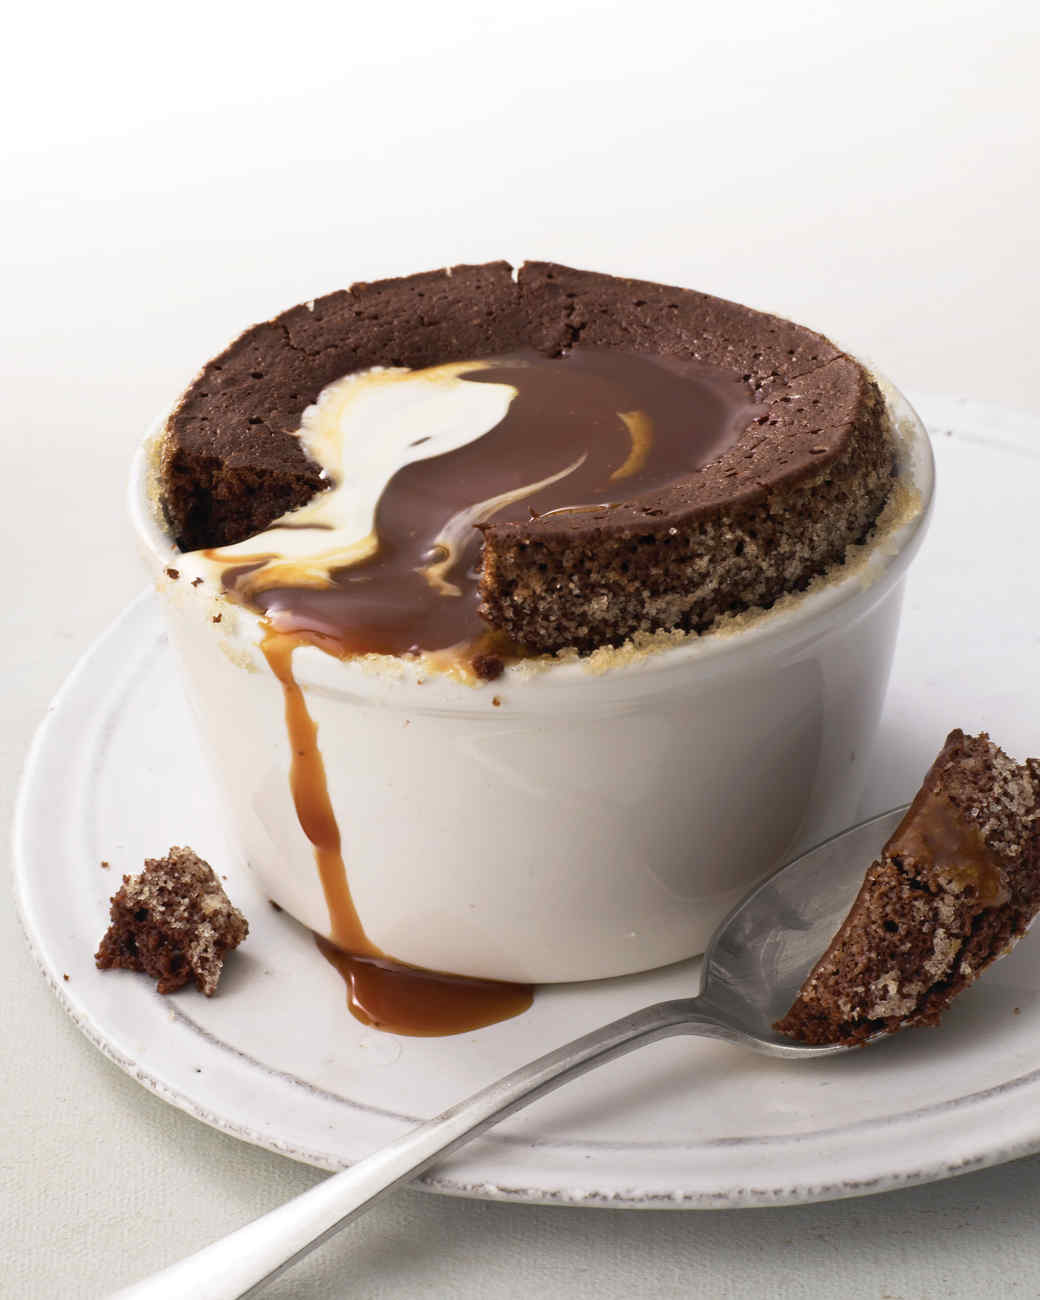 Warm Chocolate Pudding Cakes with Caramel Sauce